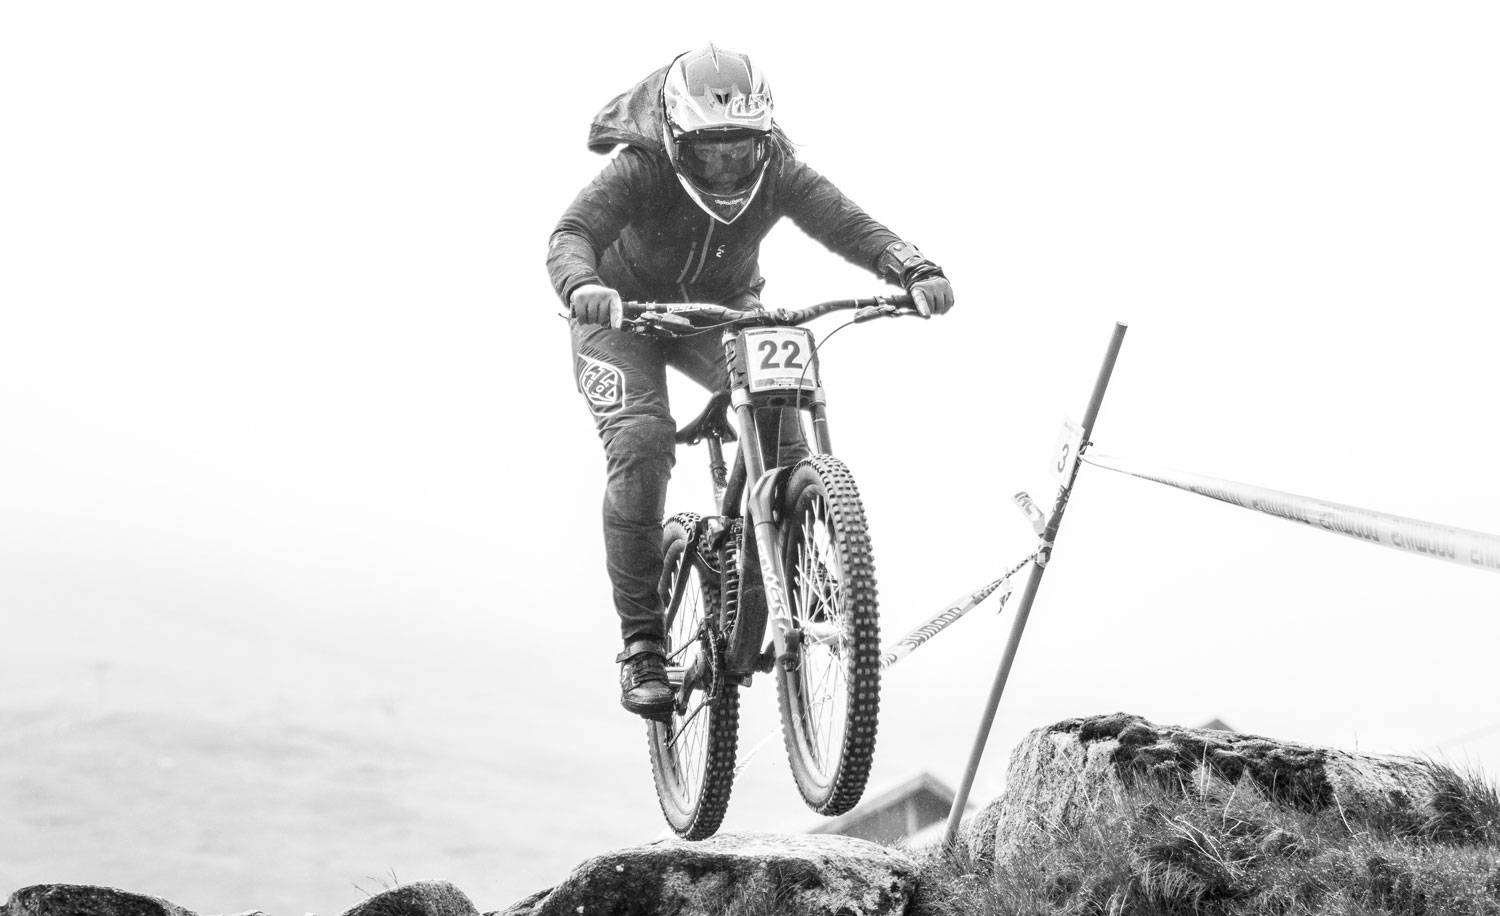 Wet, gnarly practice in Fort William, Scotland.